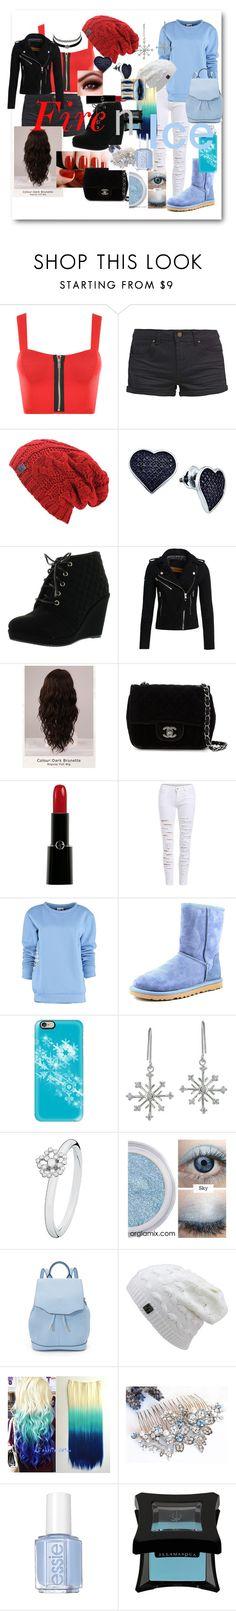 """""""My contest"""" by megraciegurl ❤ liked on Polyvore featuring WearAll, TWINTIP, BillyTheTree, Charlotte Russe, Superdry, WigYouUp, Chanel, Giorgio Armani, By Sun and UGG Australia"""